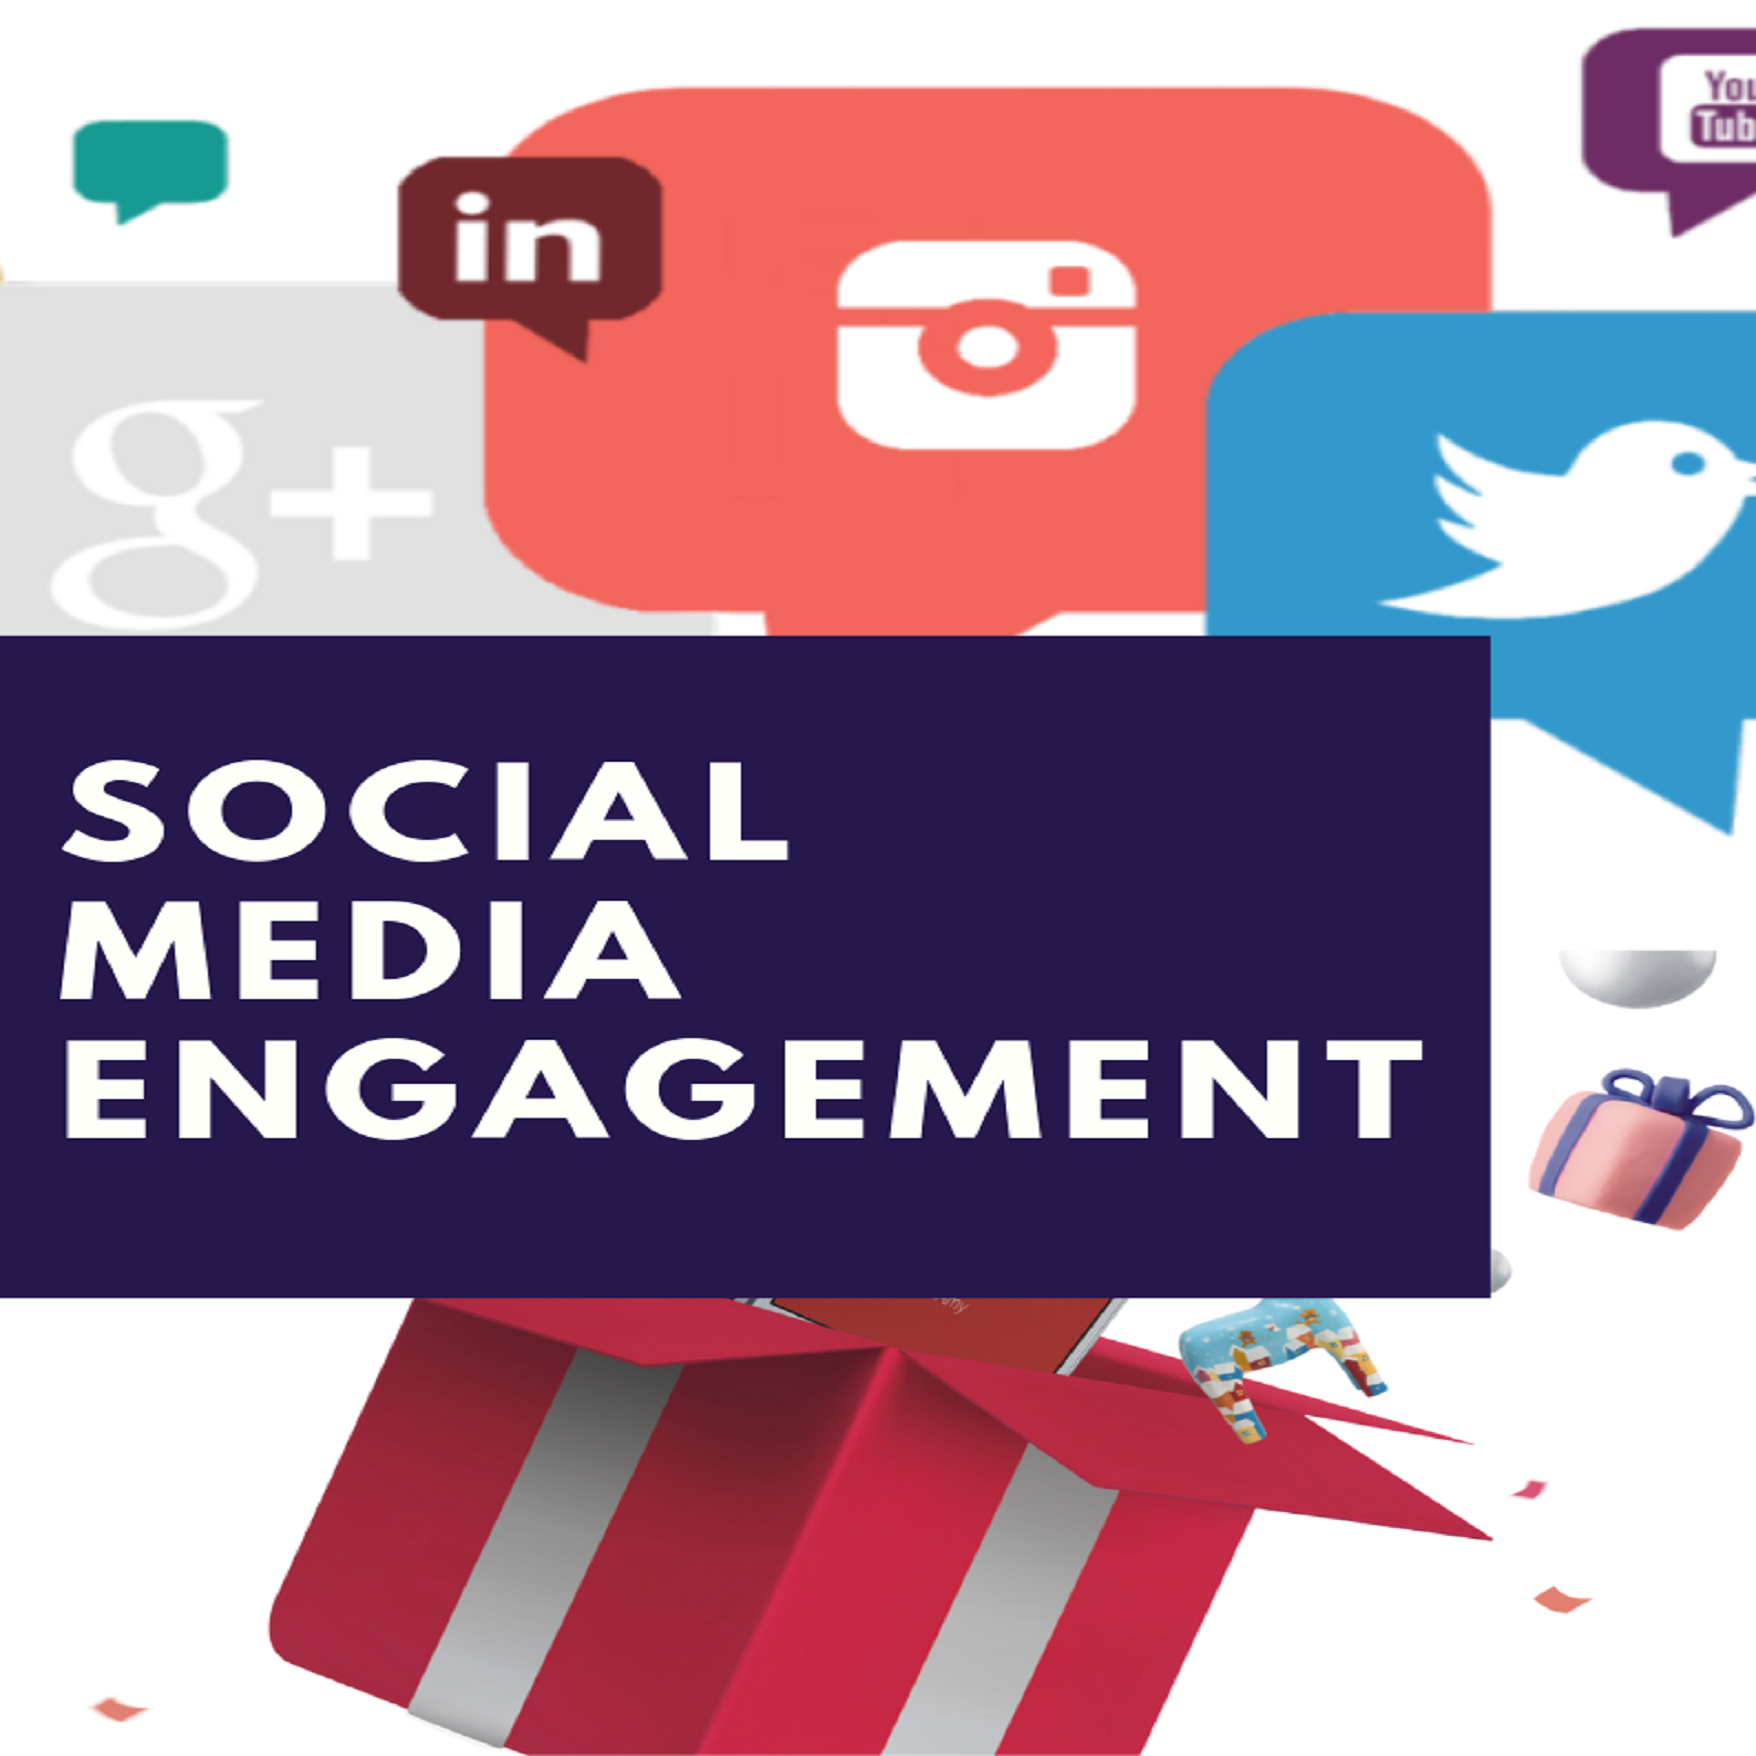 Top 5 Tips to Increase Your Social Media Engagement